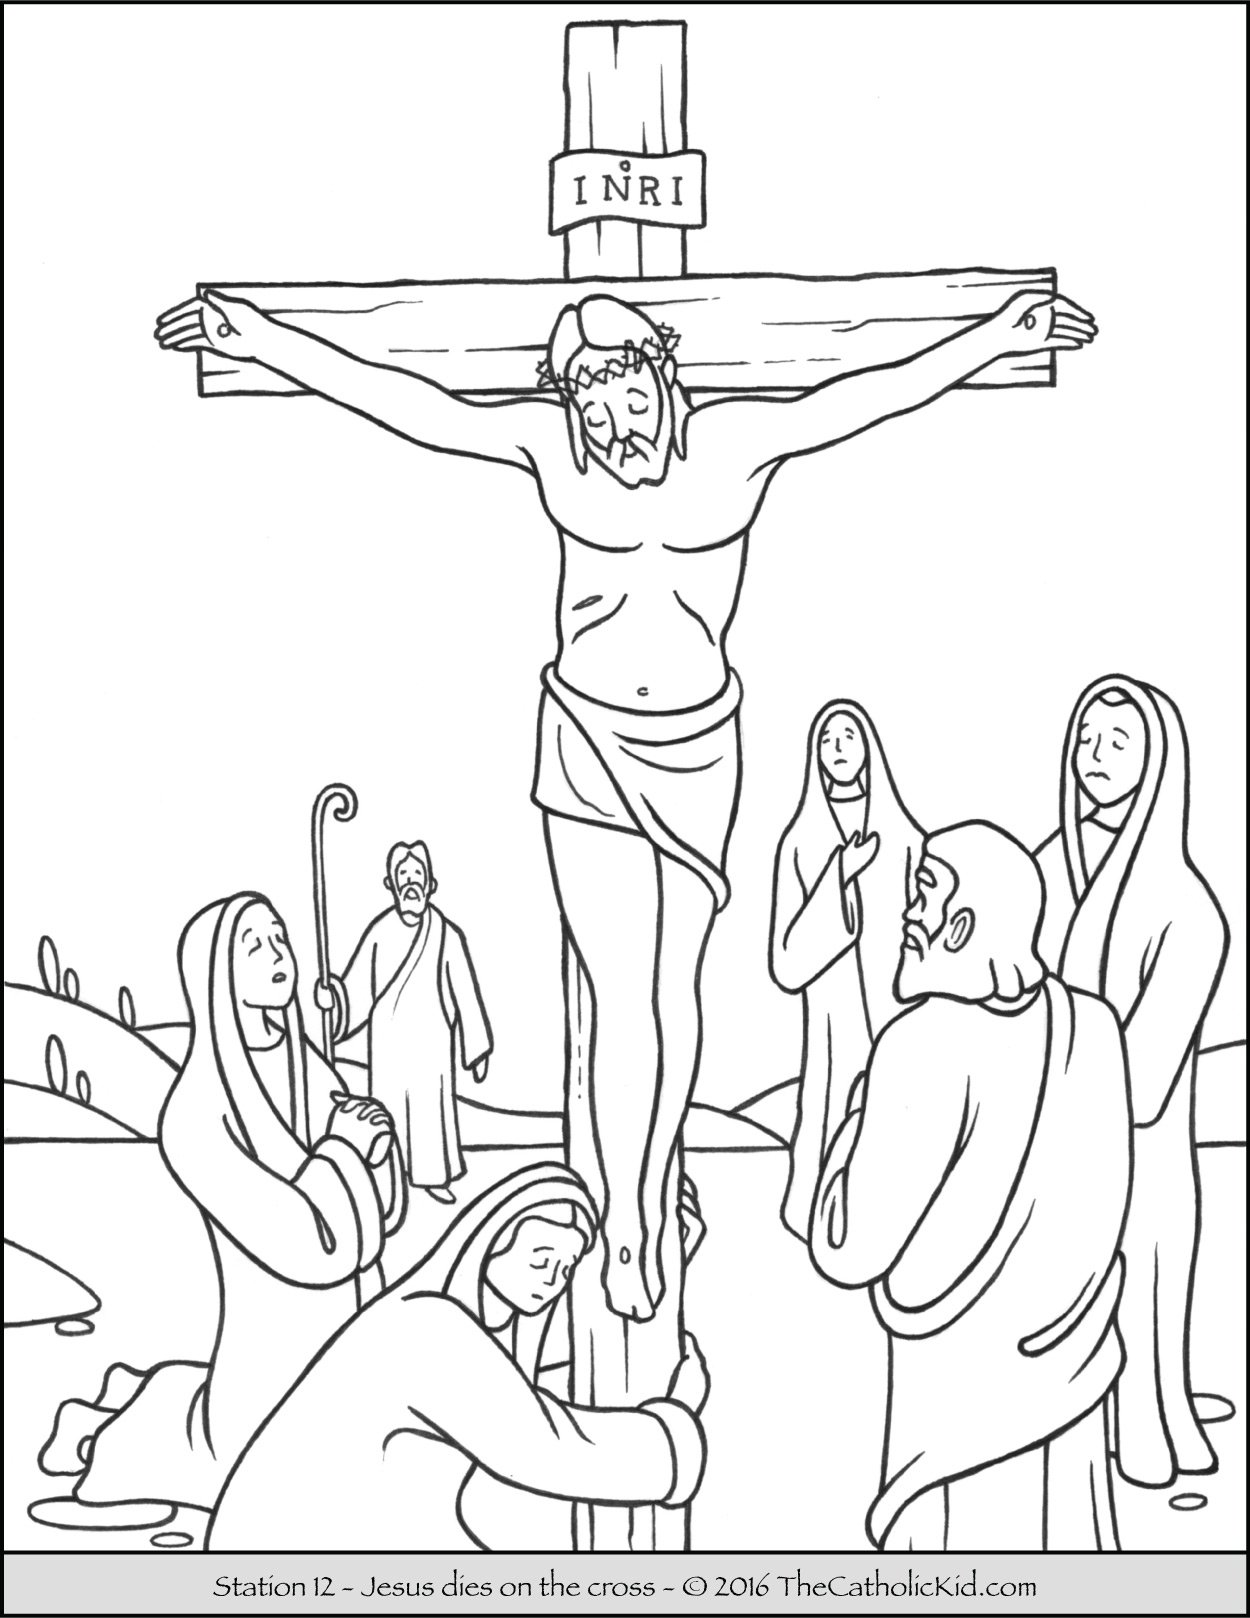 Stations of the cross coloring pages the catholic kid for Coloring pages of jesus